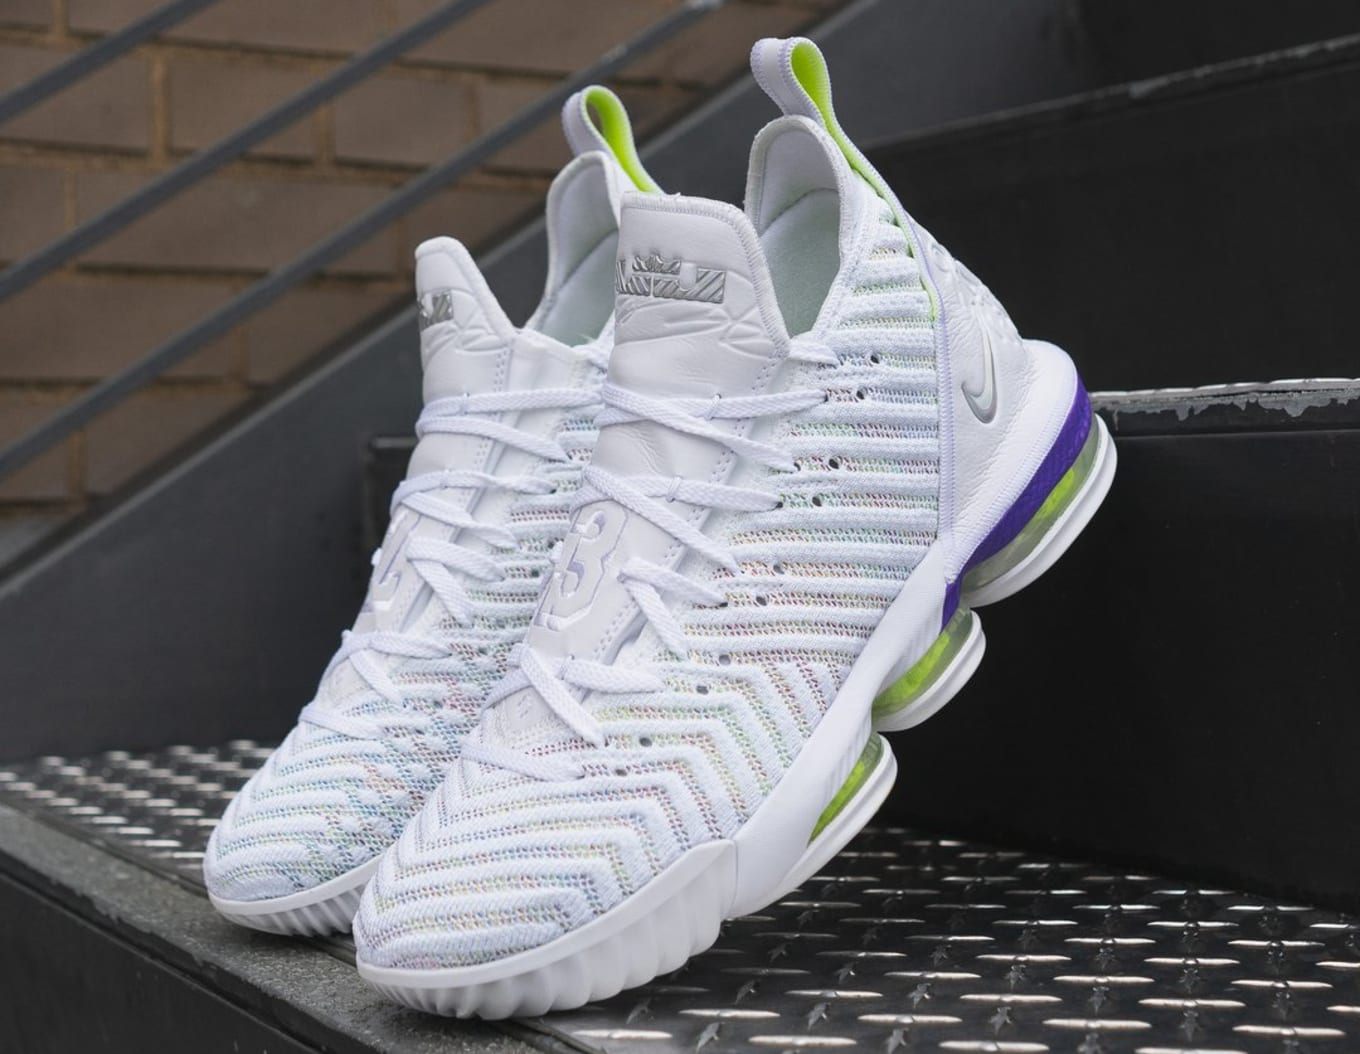 1804c7ee0c72 Nike LeBron 16 White Multicolor-Hyper Grape-Volt AO2588-102 Release ...